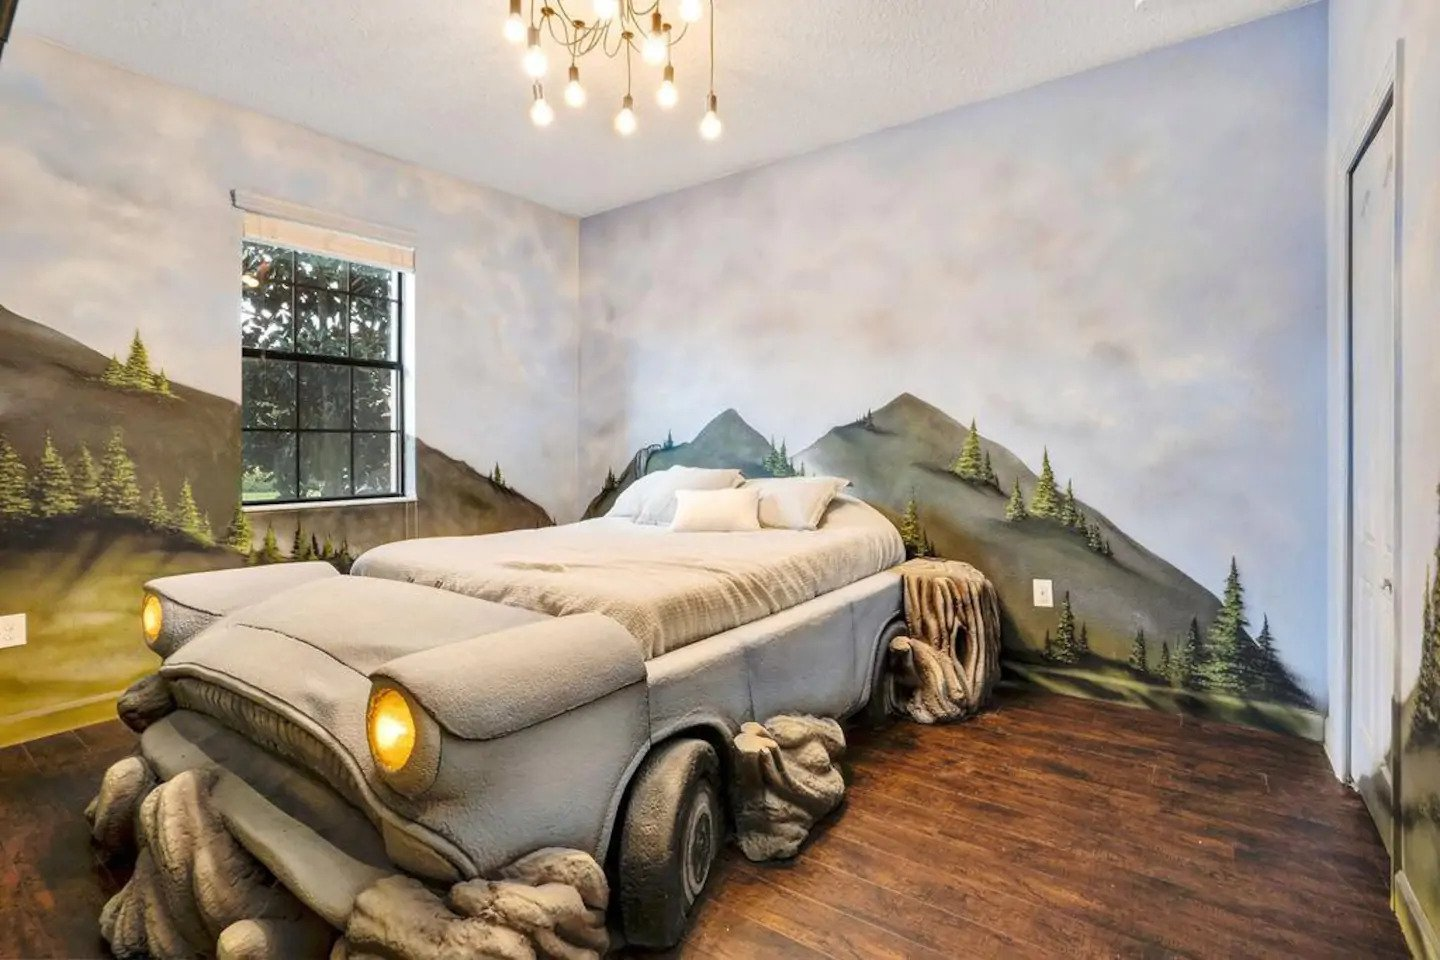 Harry Potter Airbnb in Florida